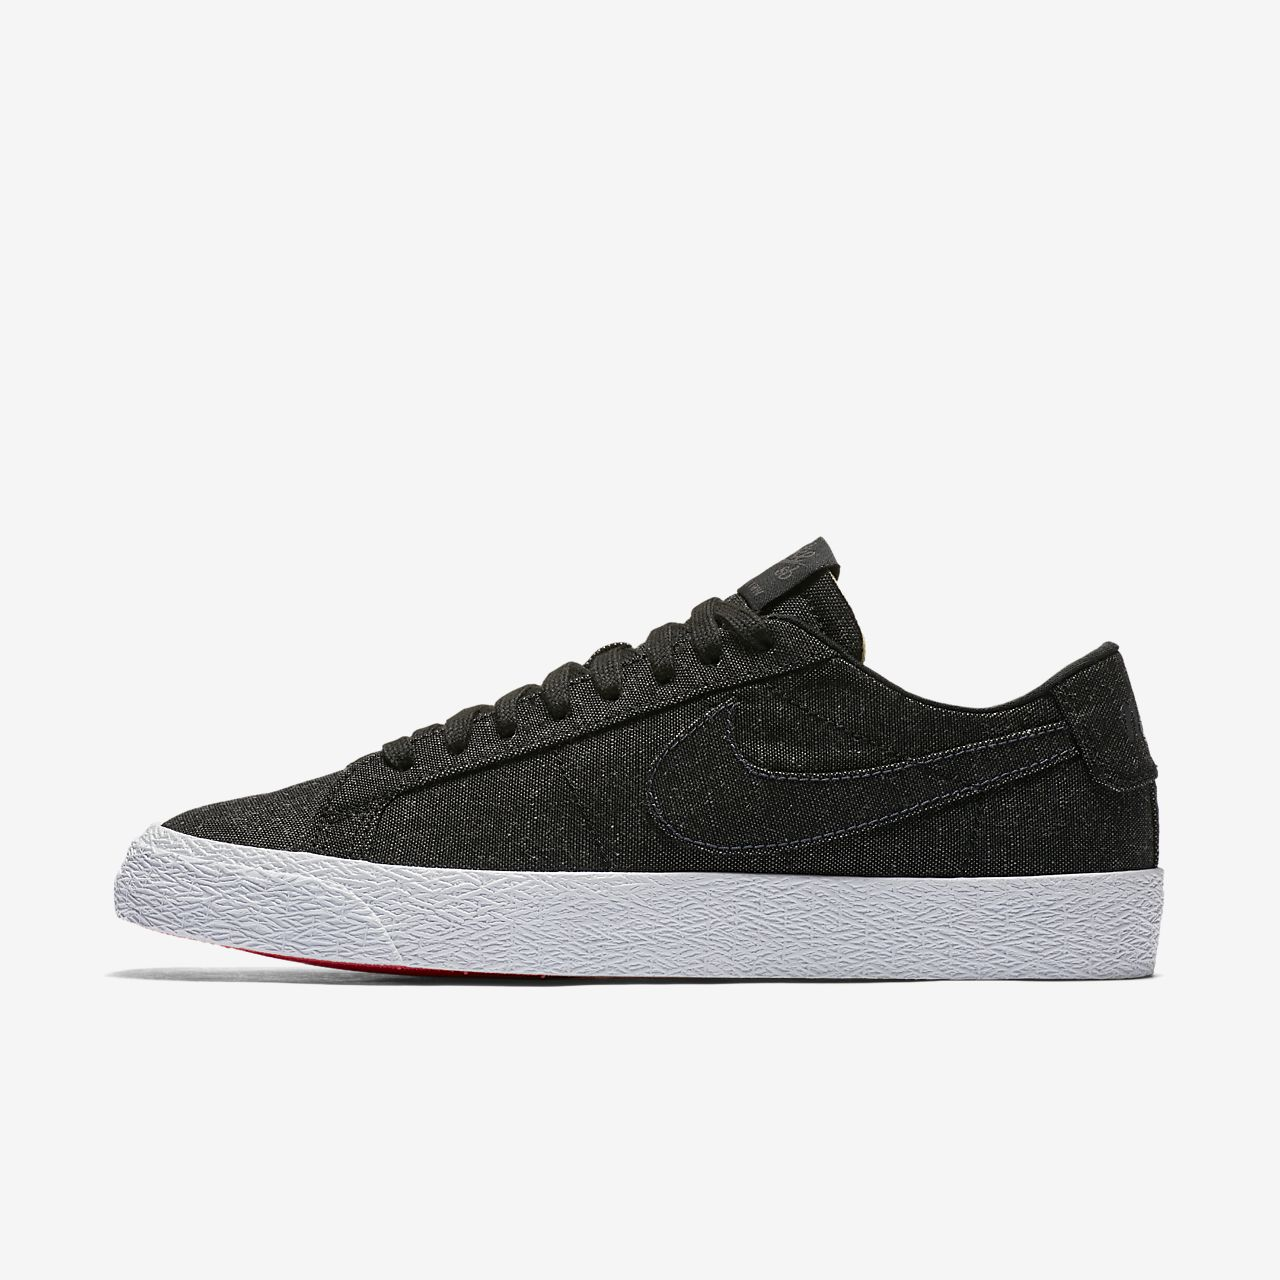 ... Męskie buty do skateboardingu Nike SB Zoom Blazer Low Canvas  Deconstructed 5bc25e8dc